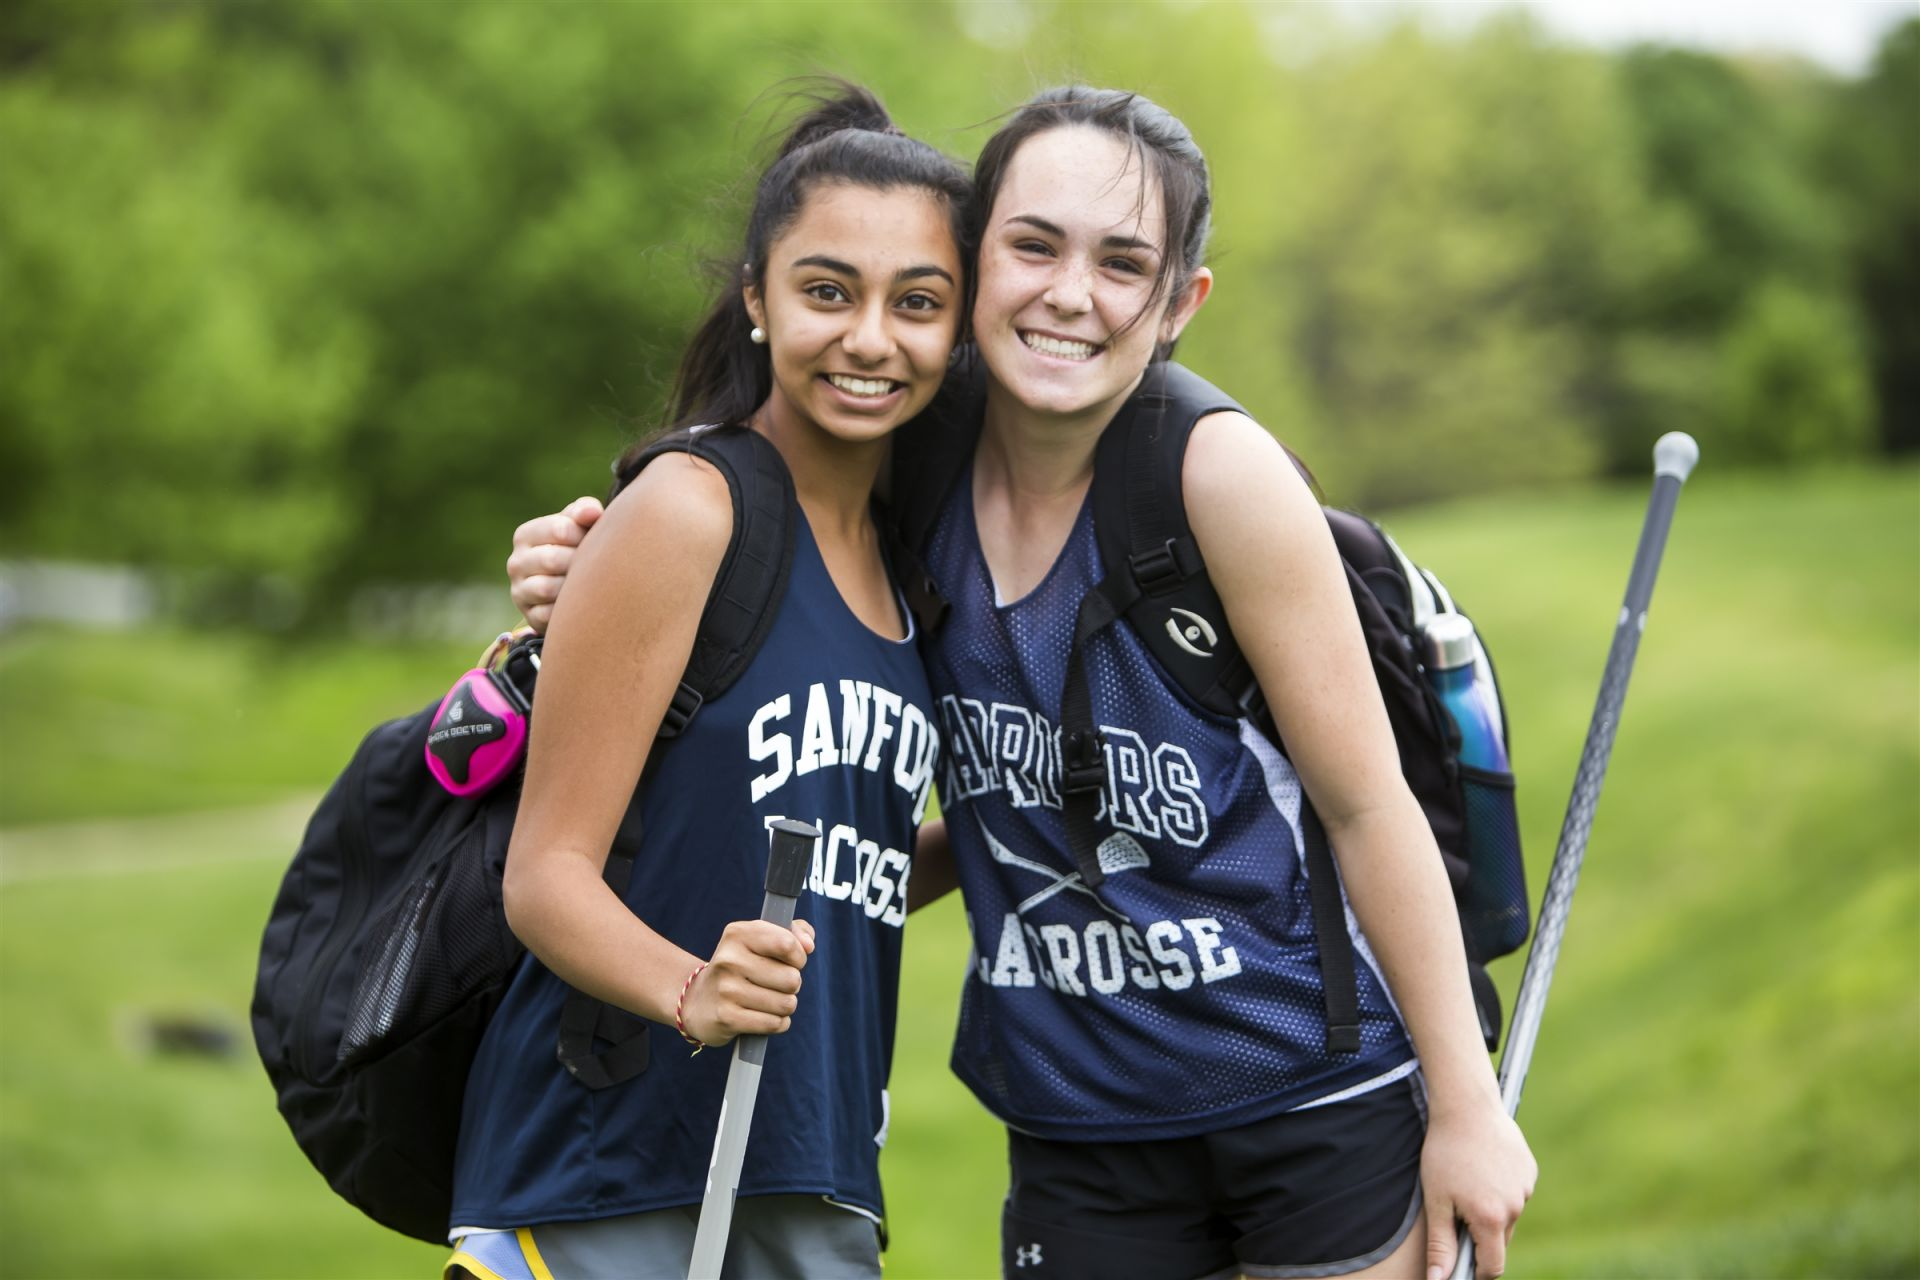 Upper school students prepare for after-school sports.